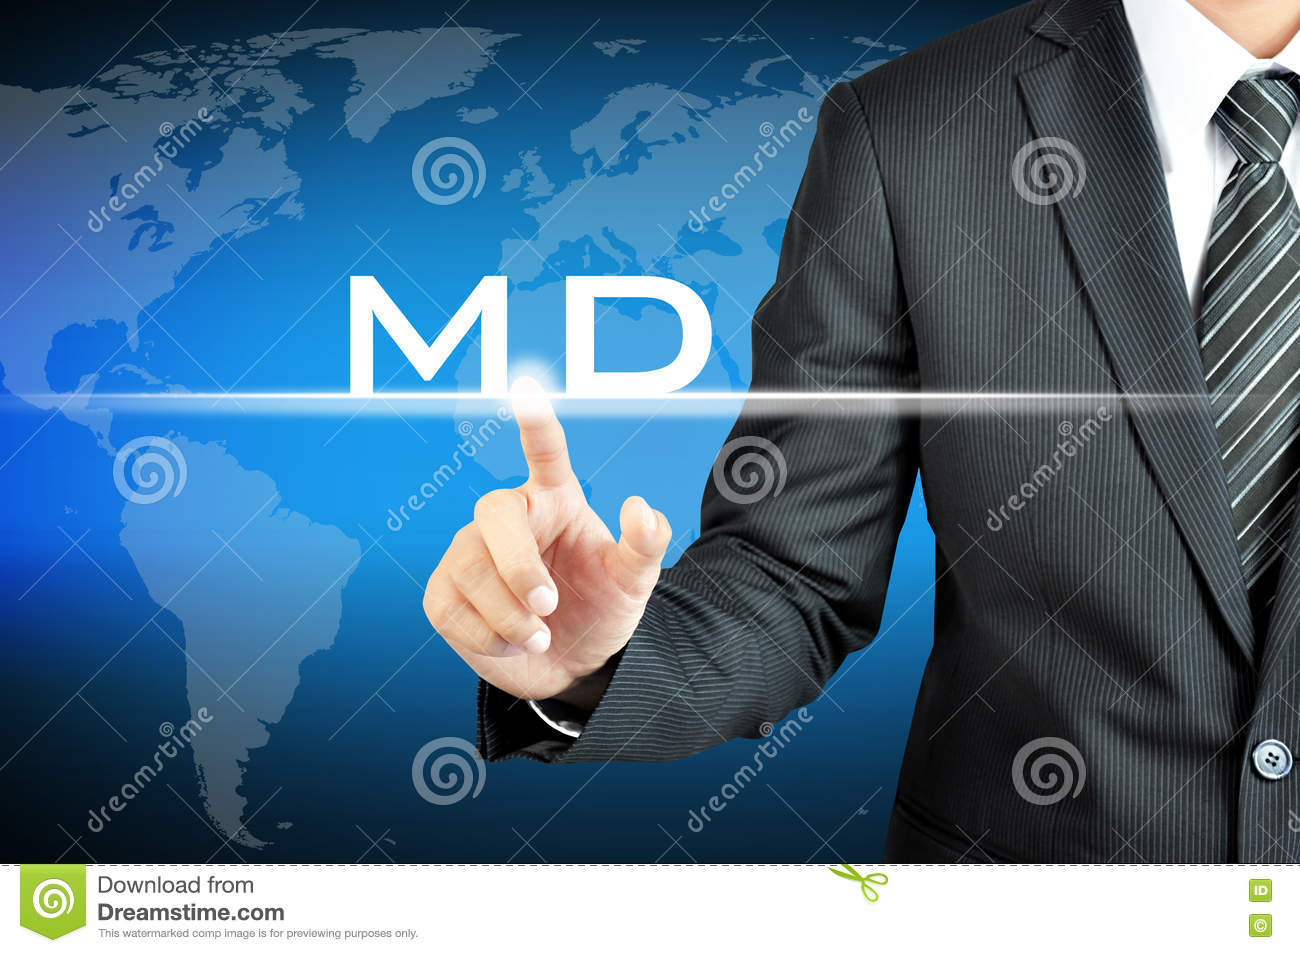 Businessman hand touching MD (or Managing Director) sign